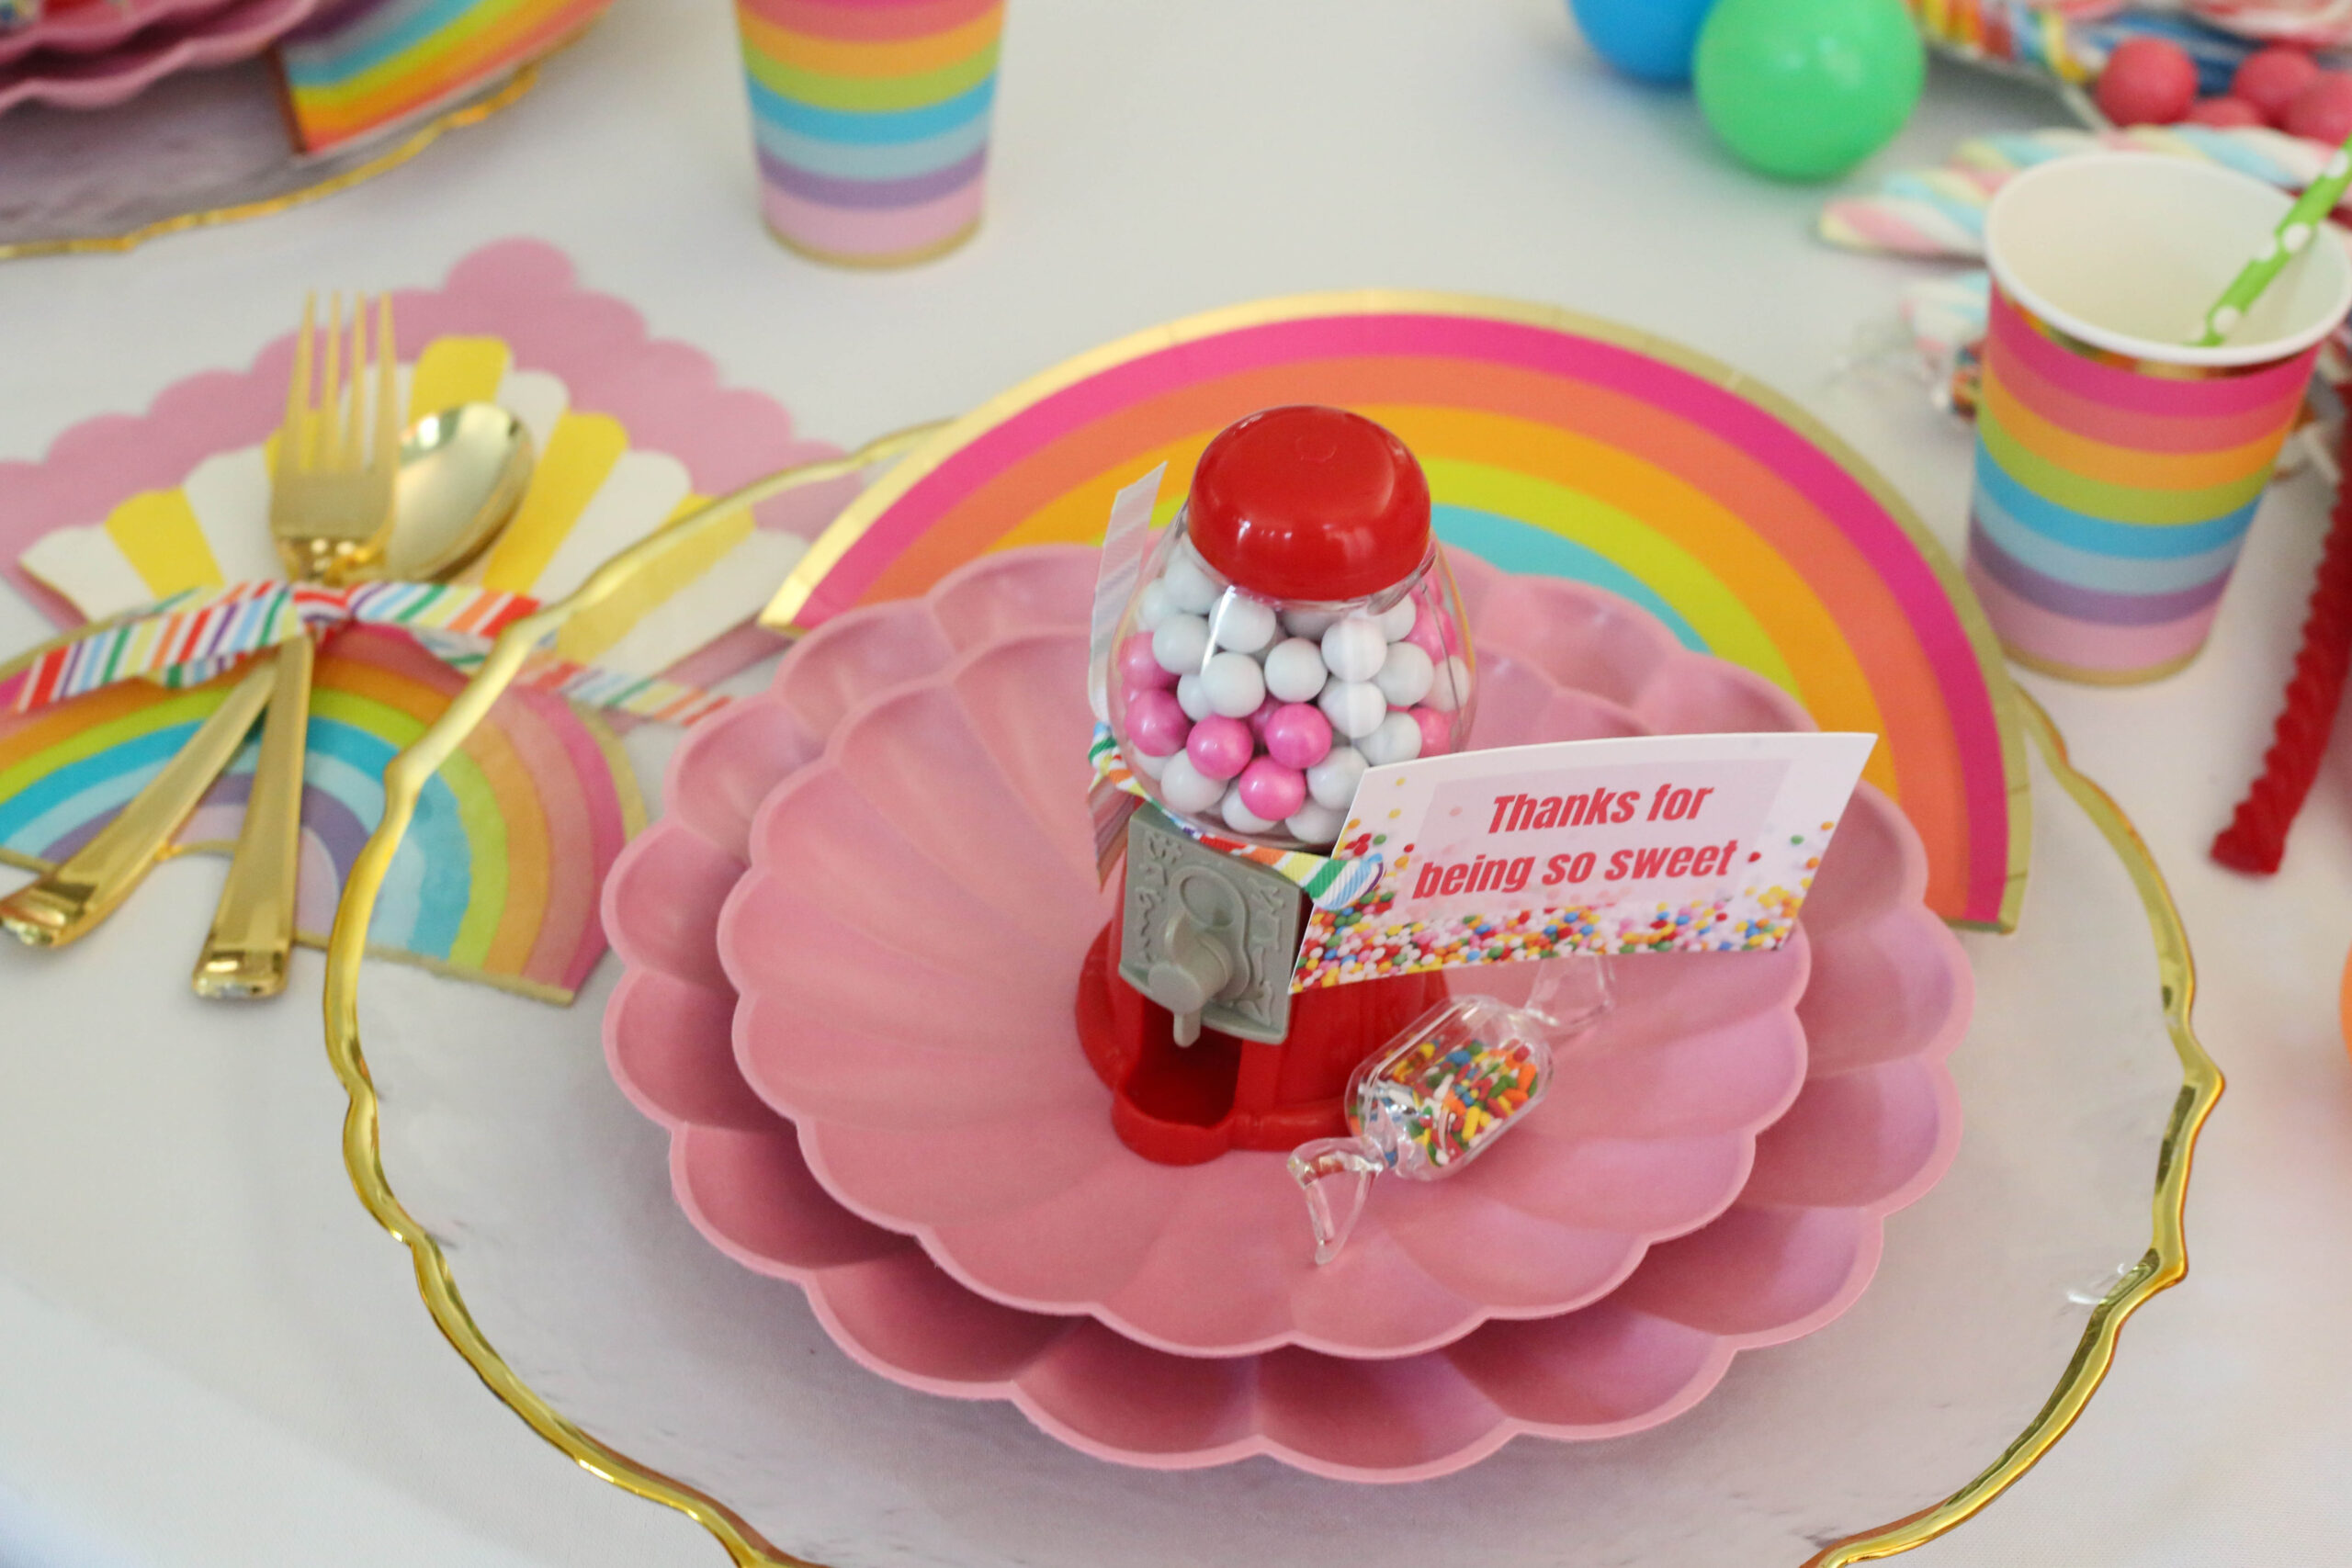 mini gumball machine party favor with printable thank you tag